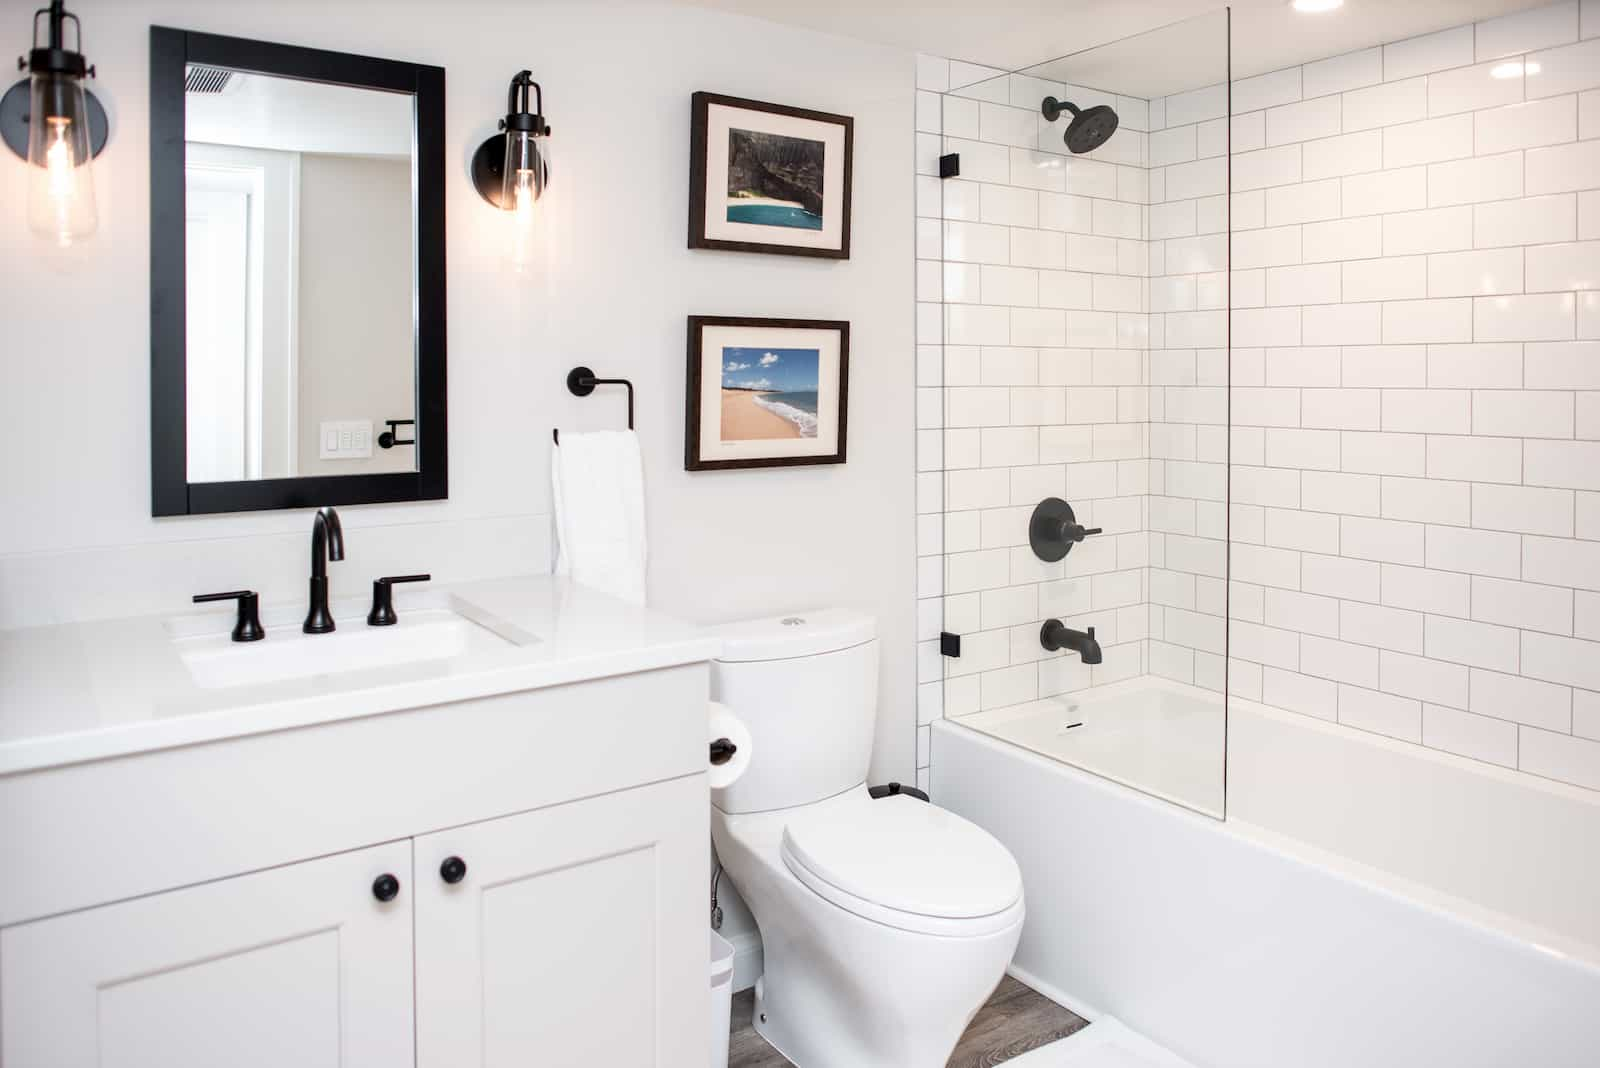 Seattle bathroom remodel - are permits required